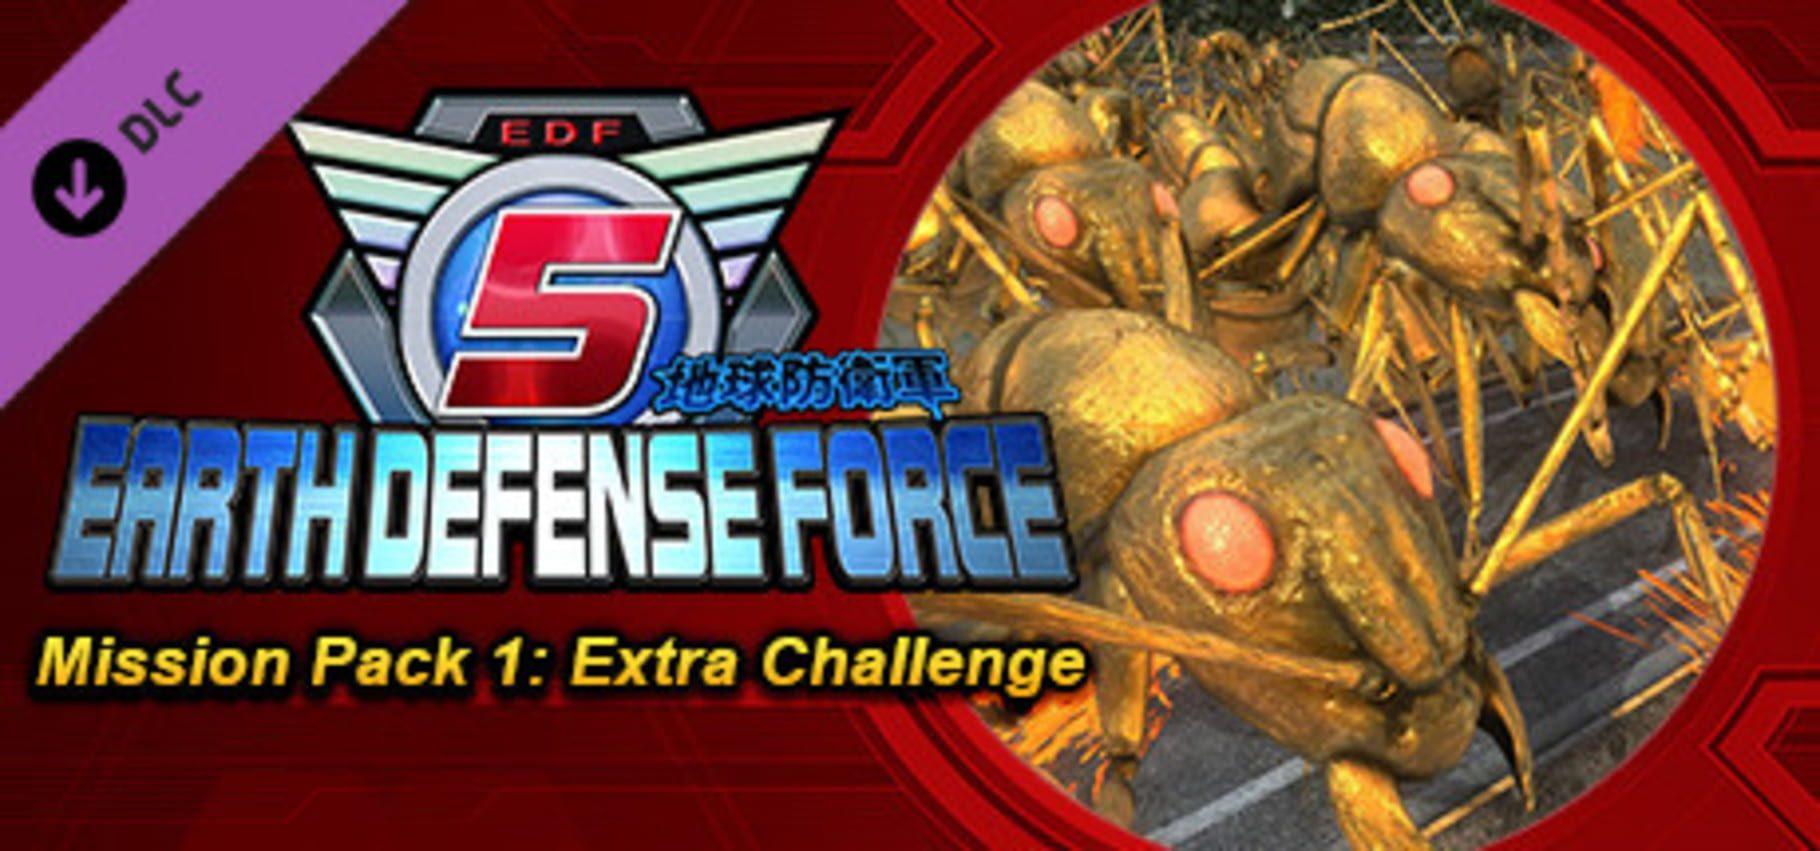 buy Earth Defense Force 5 - Mission Pack 1: Extra Challenge cd key for pc platform